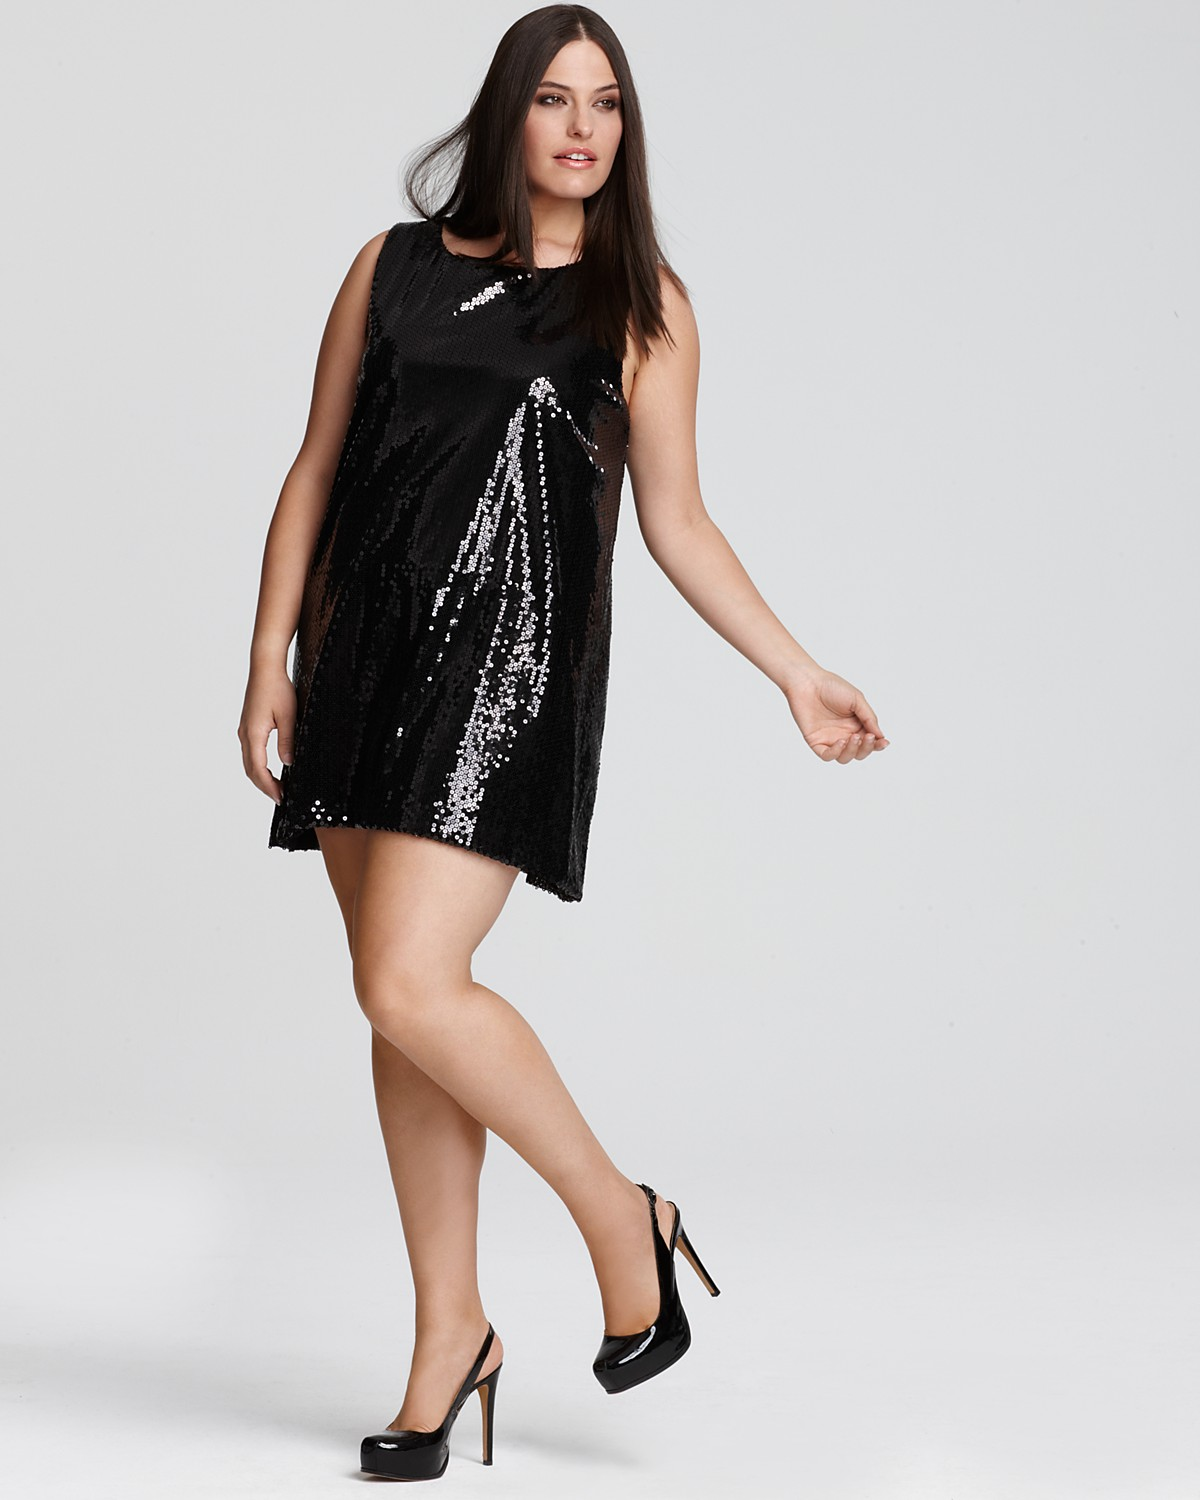 Sequin Plus Size Dresses - Holiday Dresses